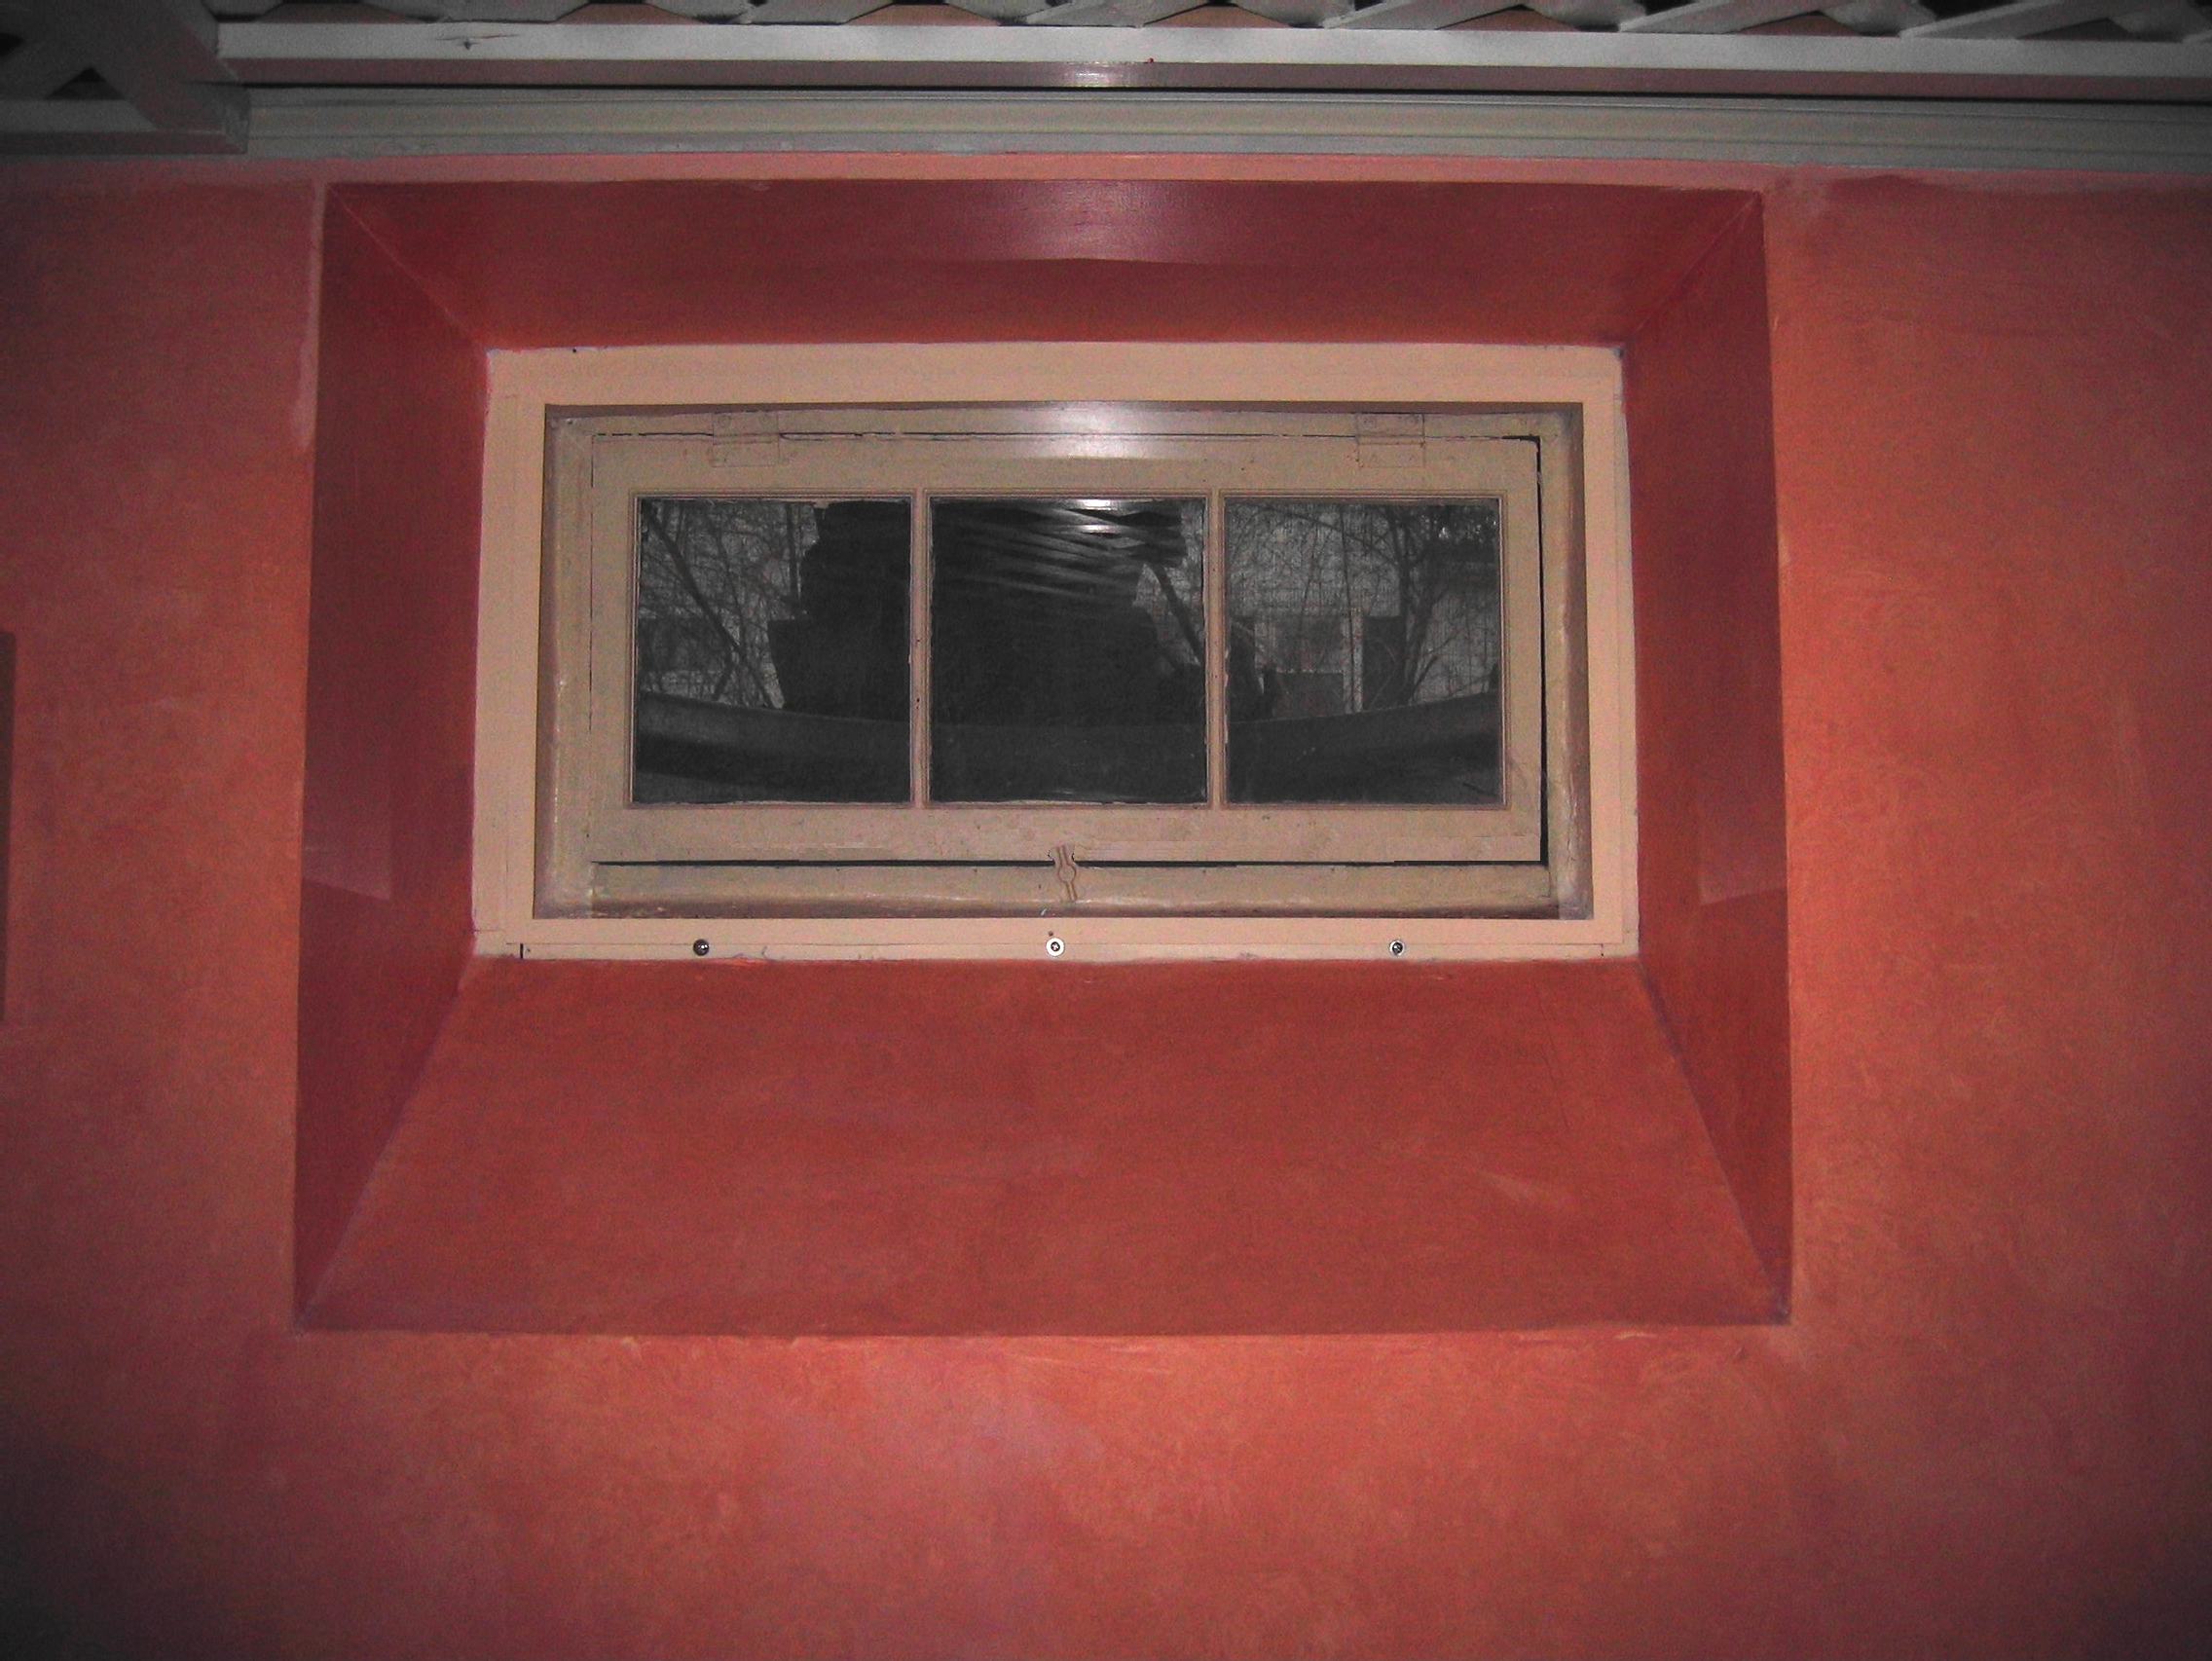 the basement window at left was custom designed with an interior